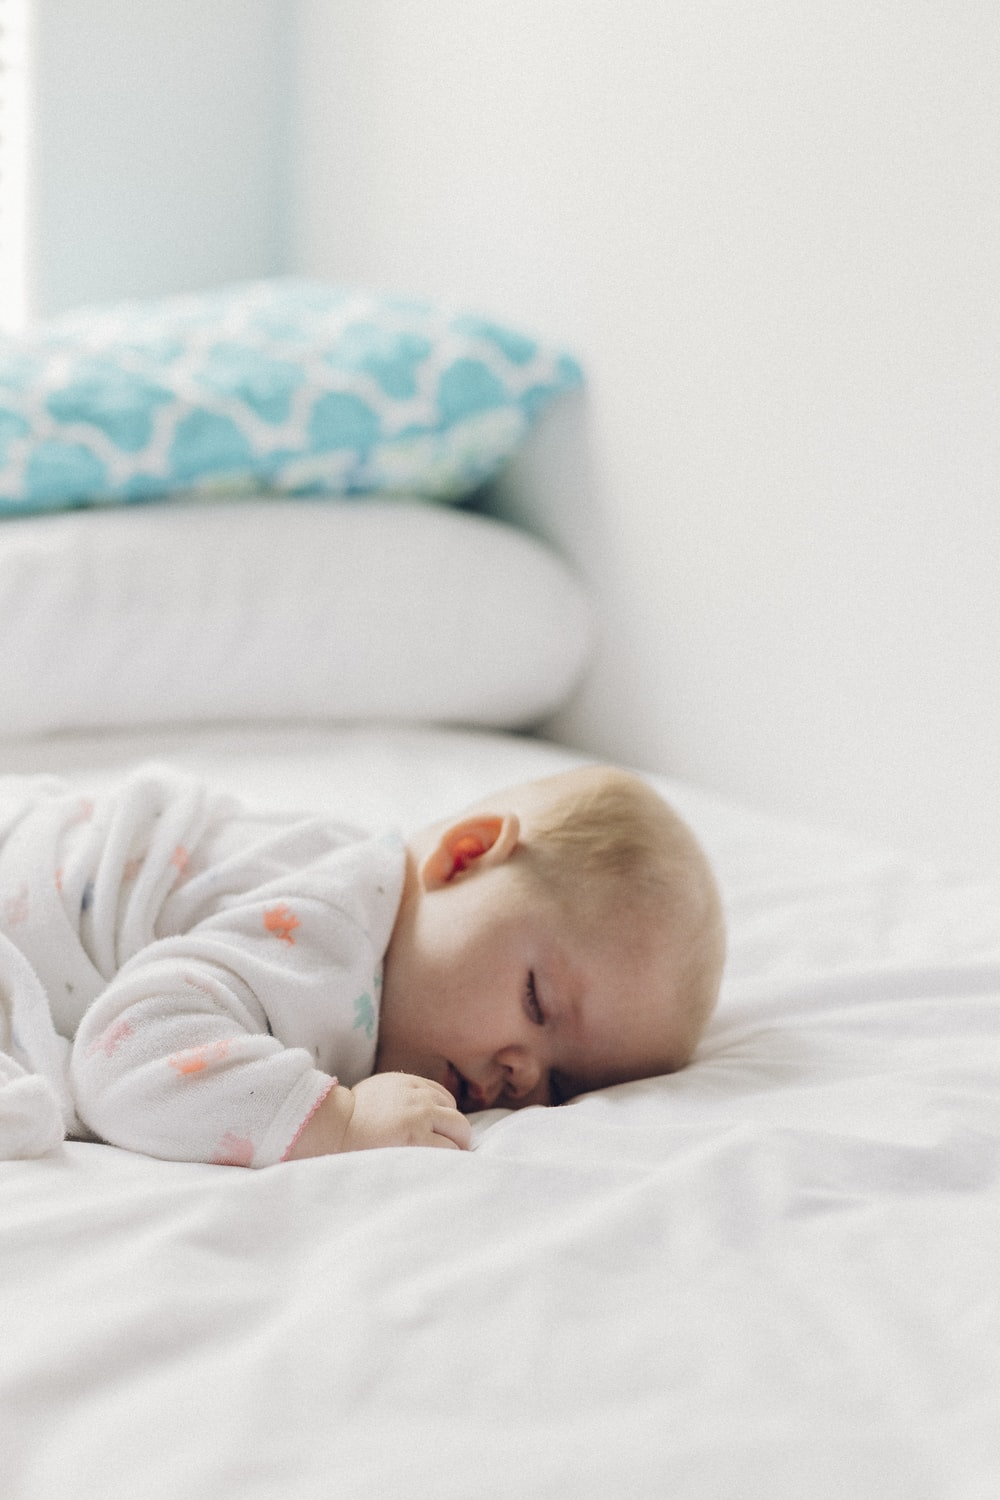 photo of baby laying on bed